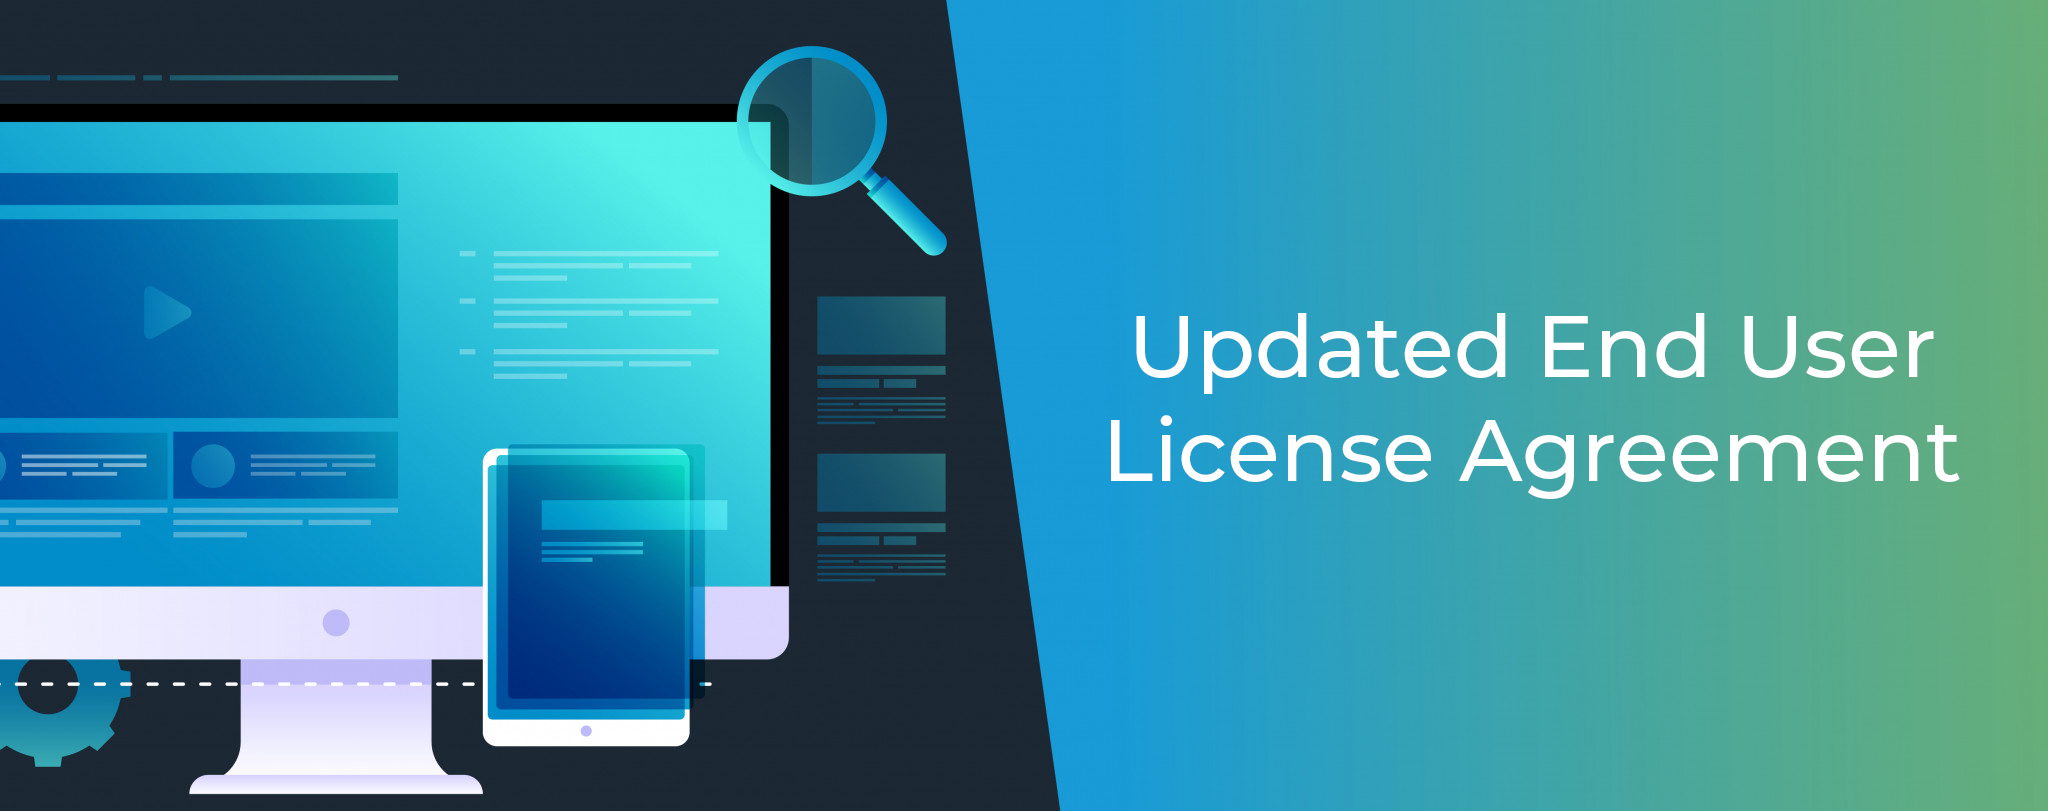 Updated End User License Agreement